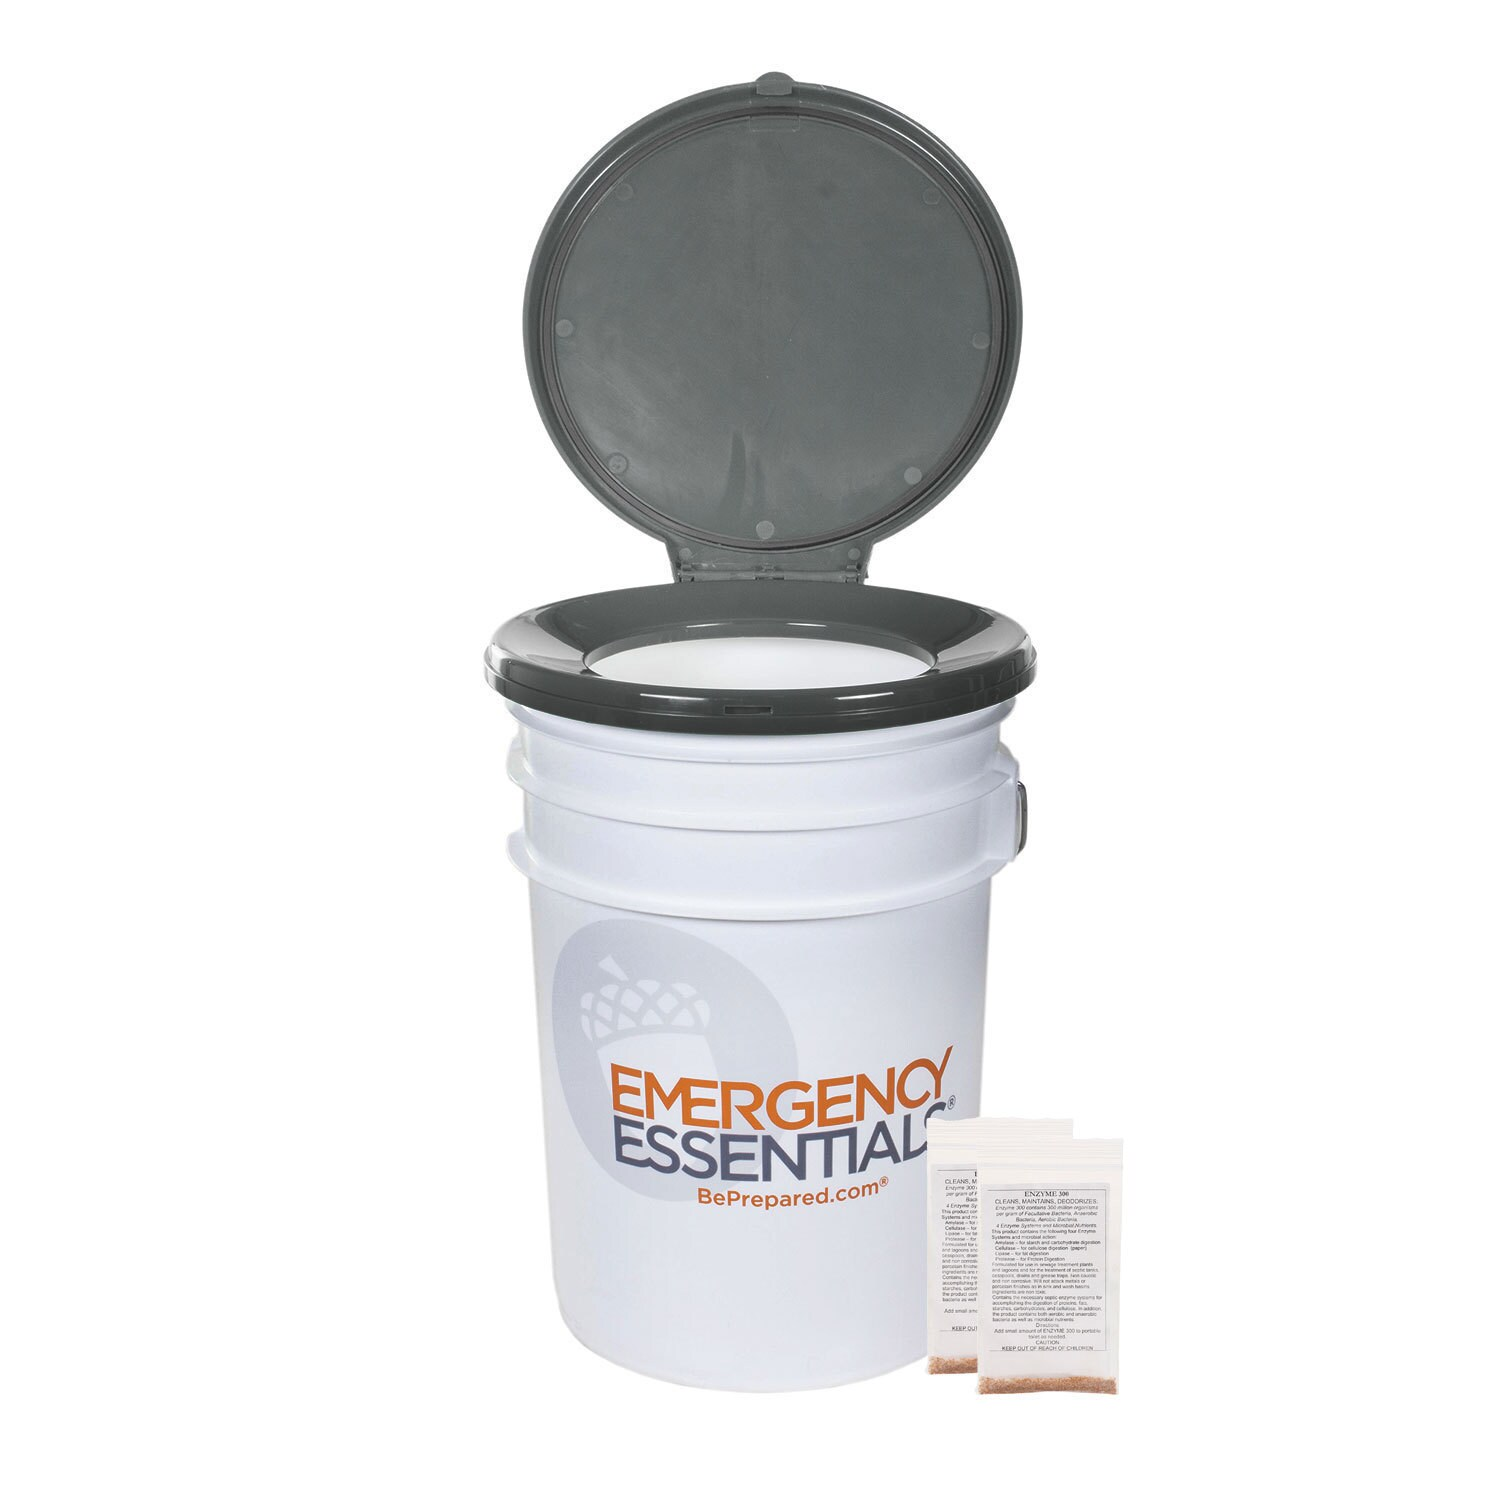 Emergency Essentials Tote-Able 6 Gallon Toilet with 2 Enz...